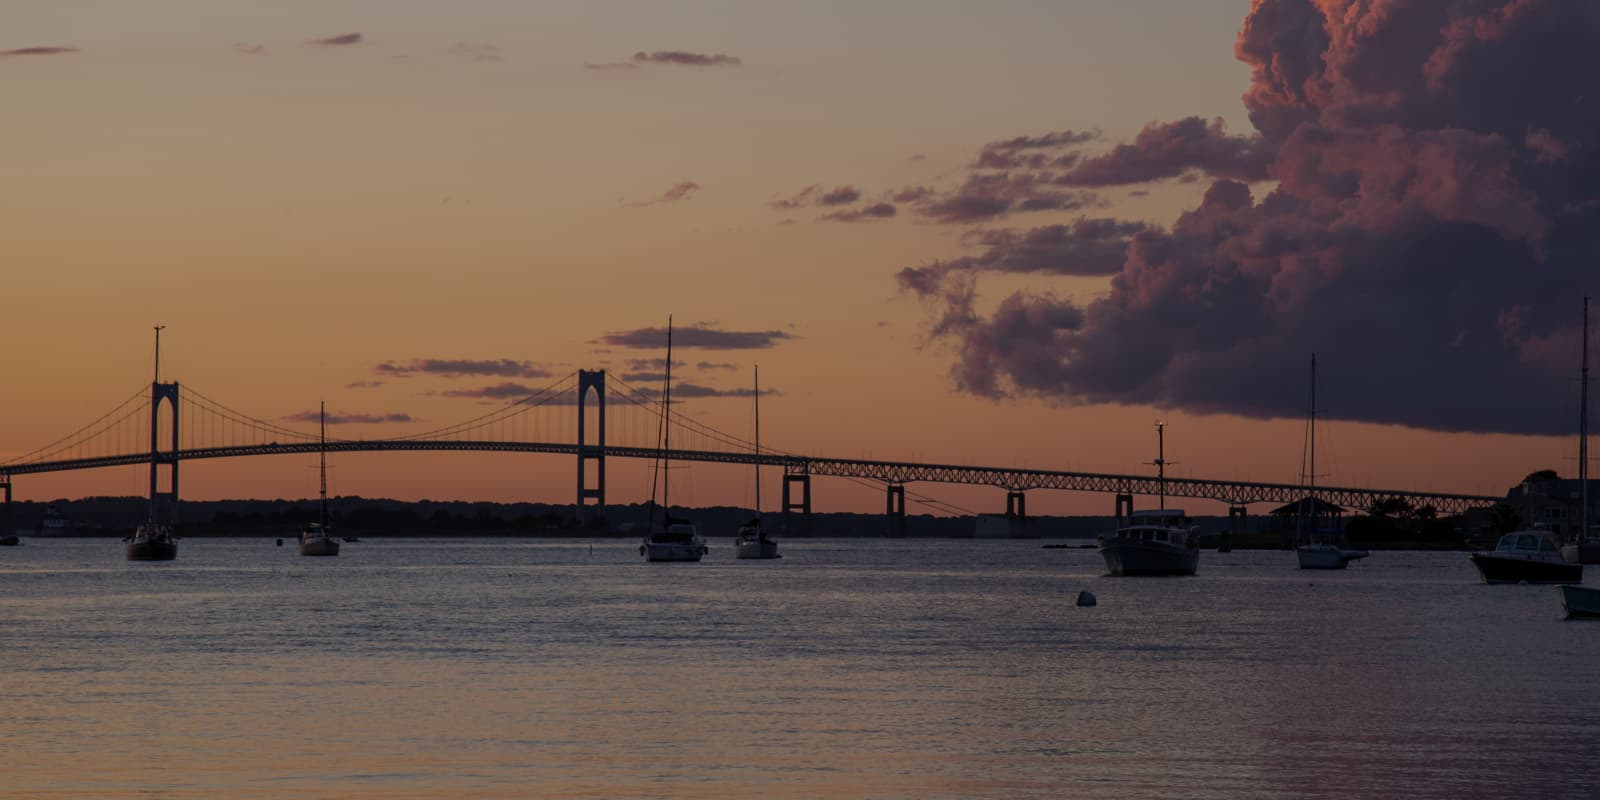 View of the bridge at twilight